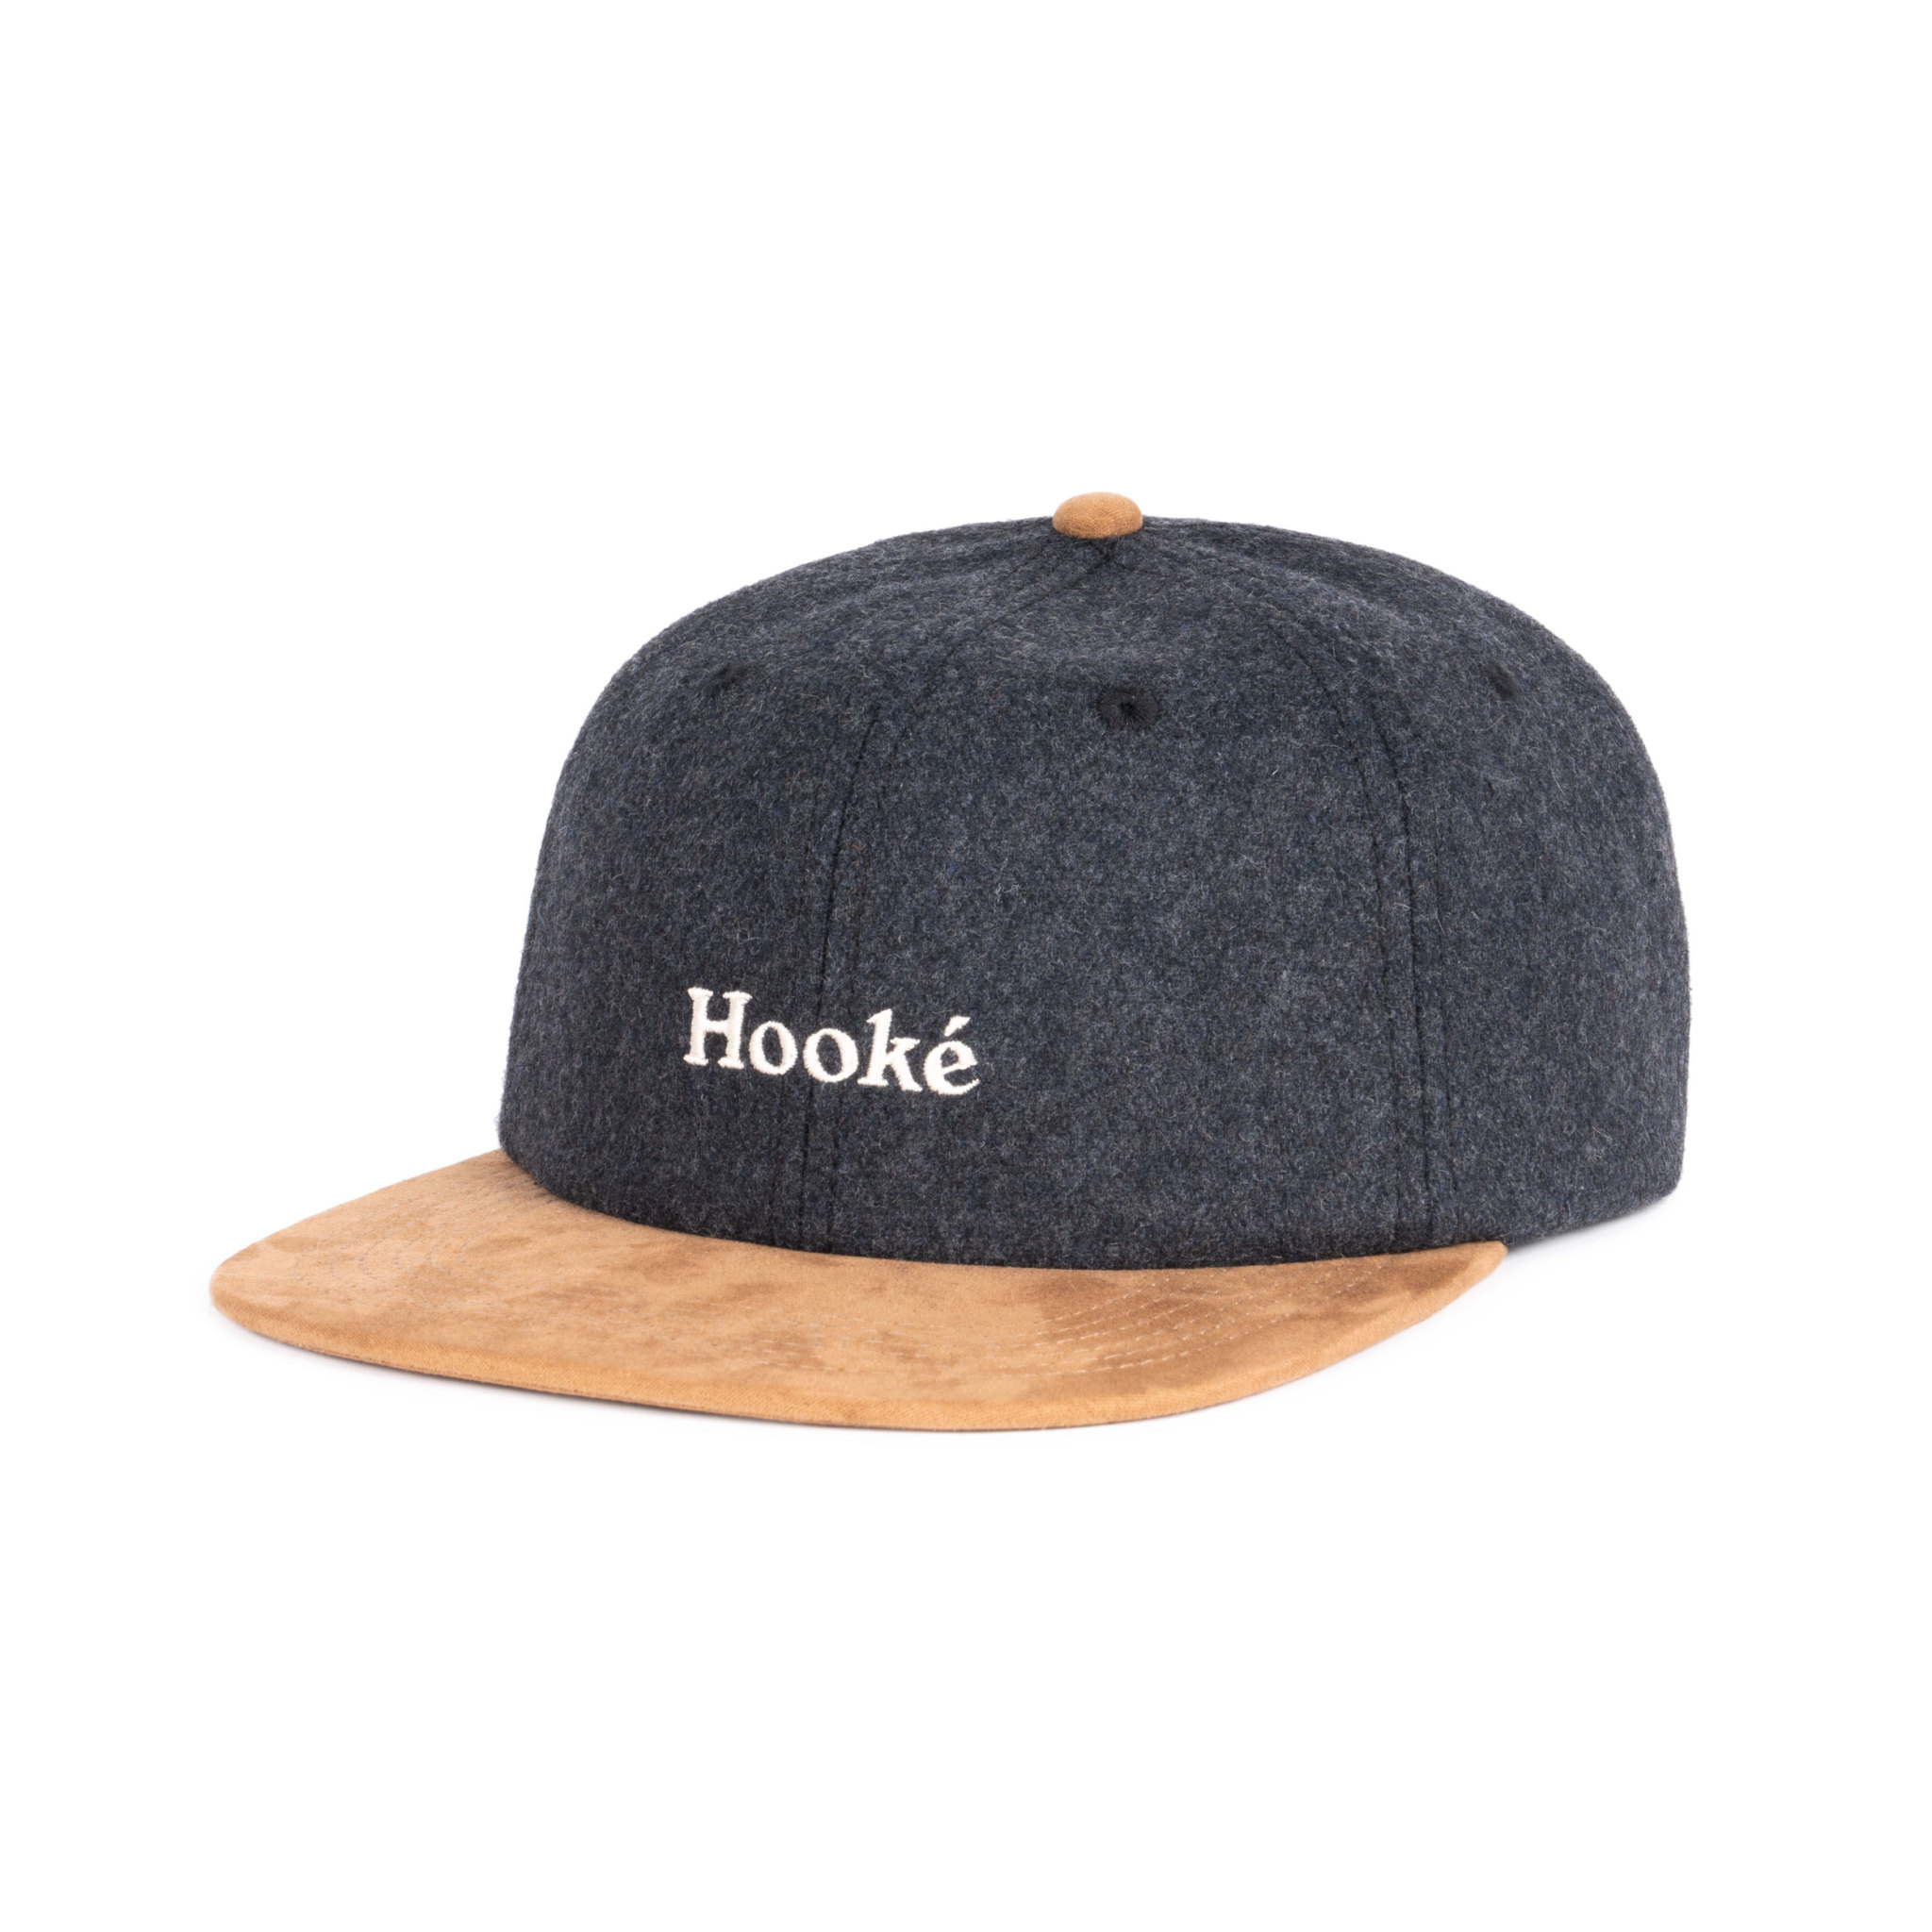 Hooké Wool Strap Back Charcoal